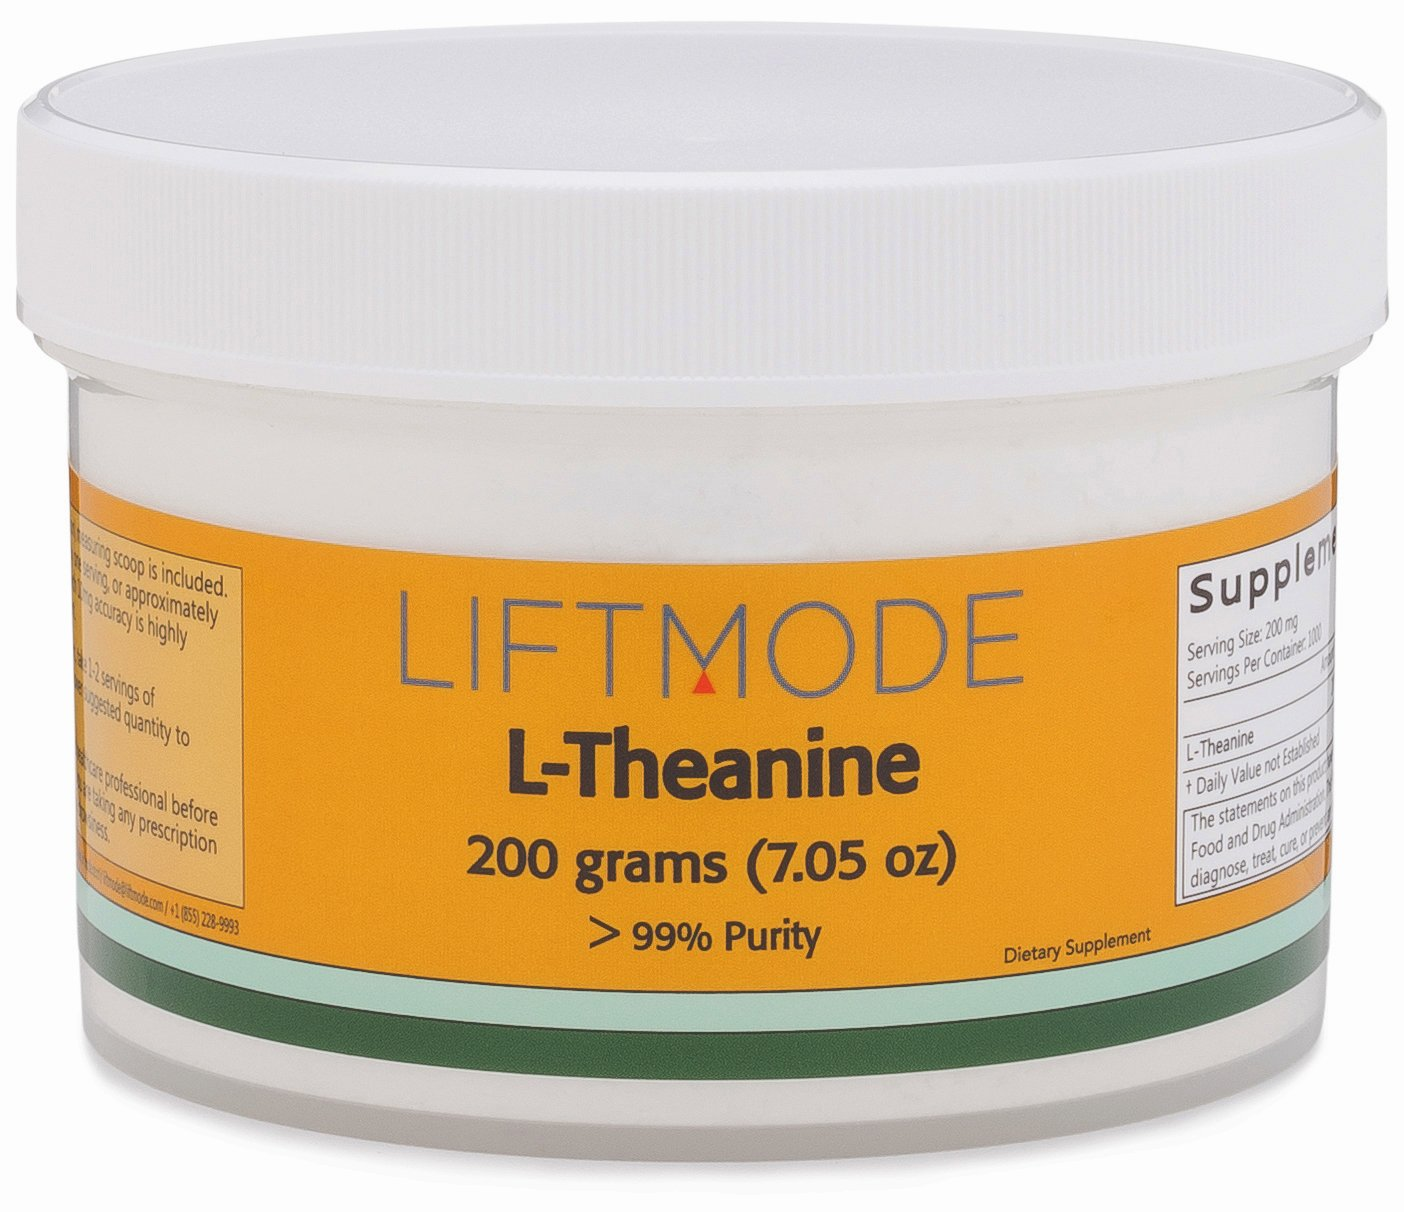 LiftMode L-Theanine Powder Supplement - for Focus, Stress Relief, Weight Loss, Pre Workout | Vegetarian, Vegan, Non-GMO, Gluten Free - 200 Grams (1000 Servings)